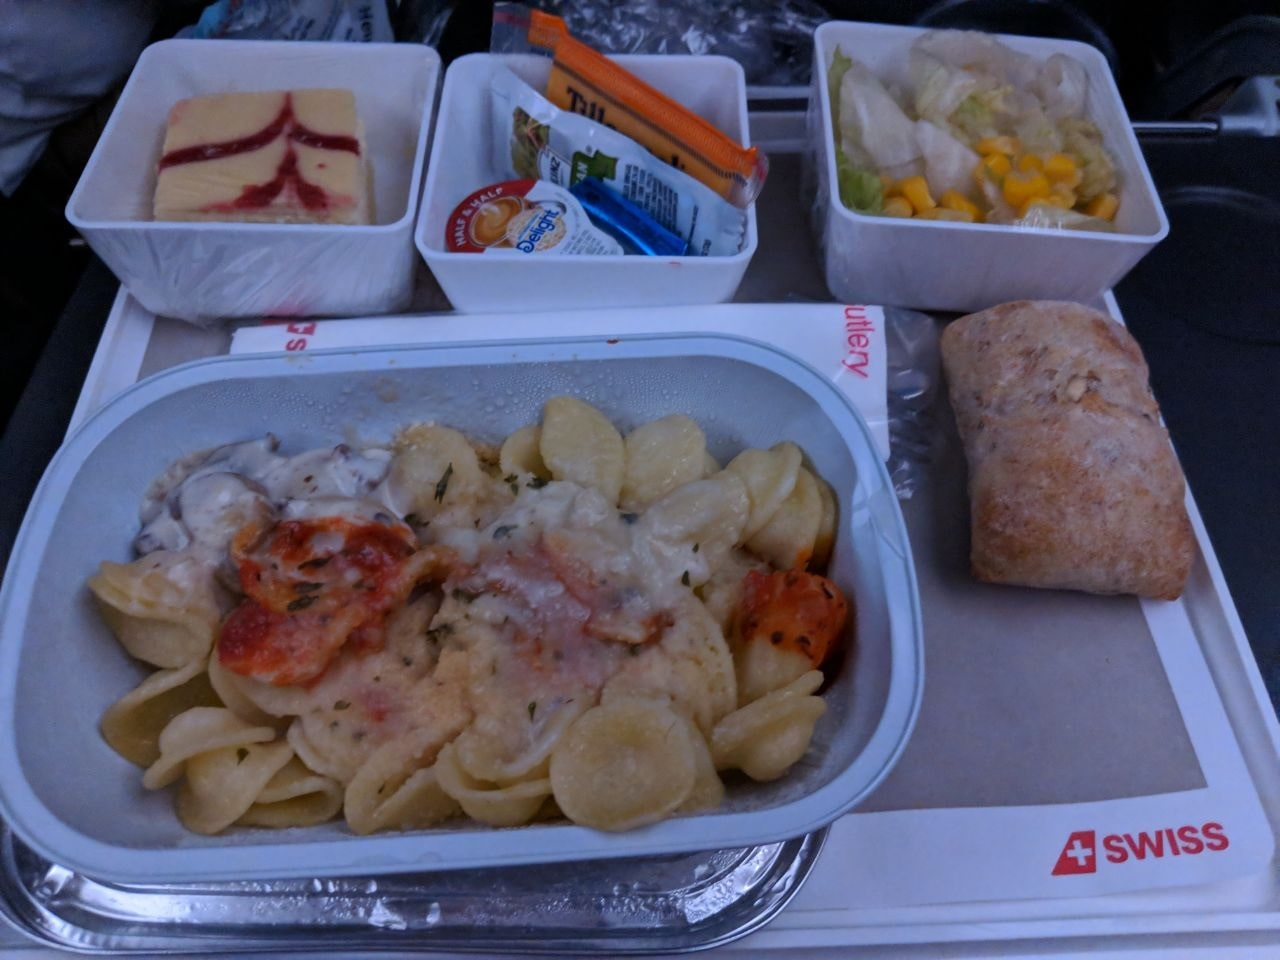 Swiss Airline Vegetarian Meal